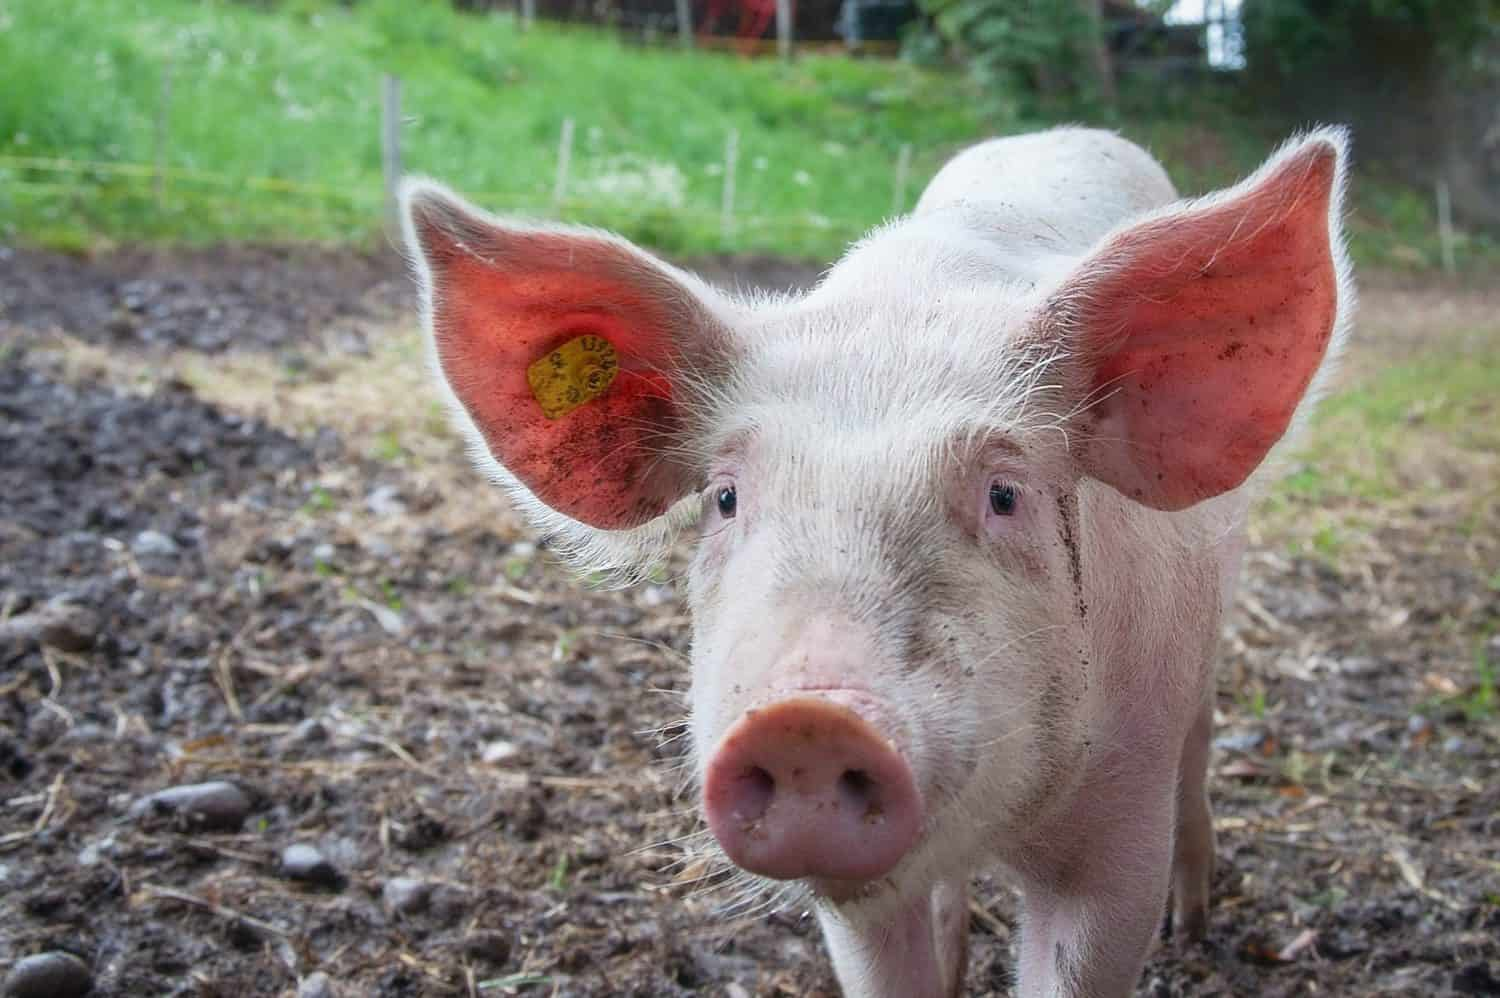 Authorities are concerned about African swine fever outbreaks in North West and the Western Cape. Photo: Supplied/Food For Mzansi